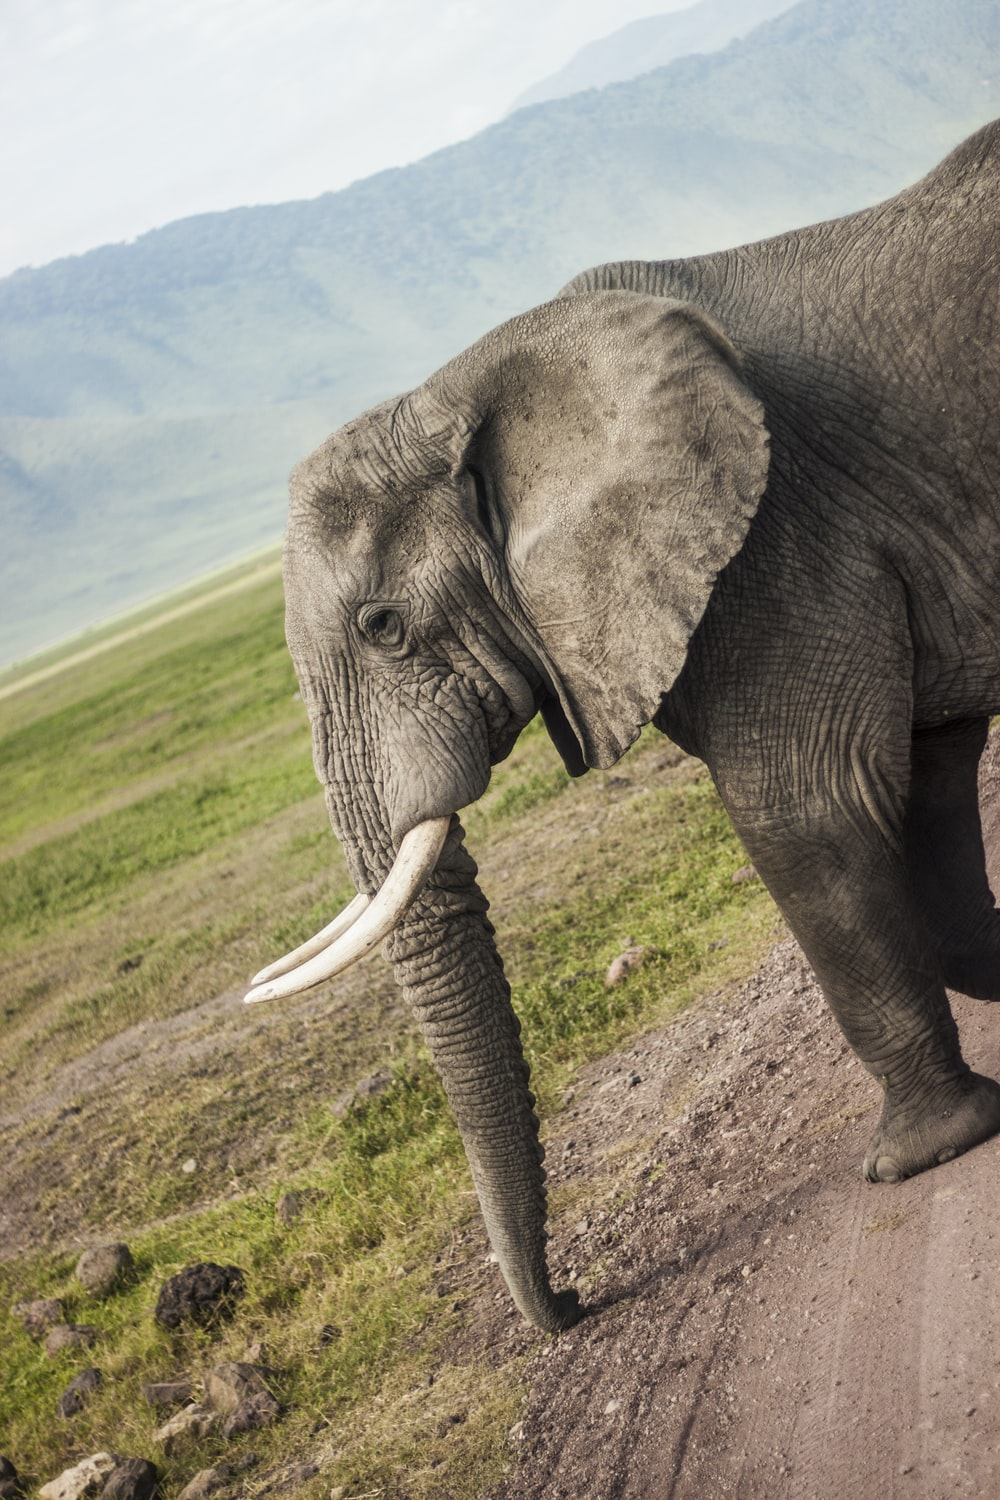 brown elephant standing on pathway during daytime